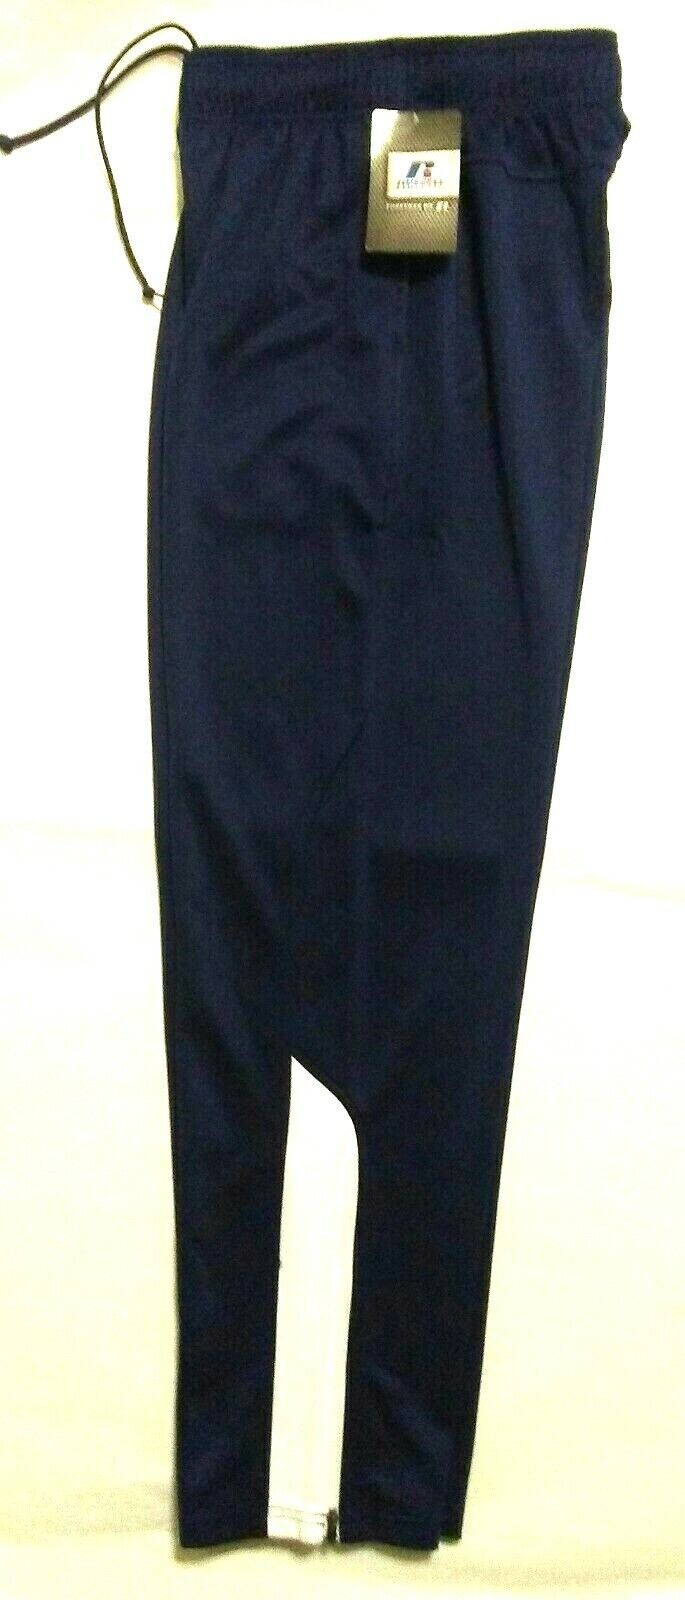 Russell Athletic Mens Navy Blue Warmup Pants Training Basket